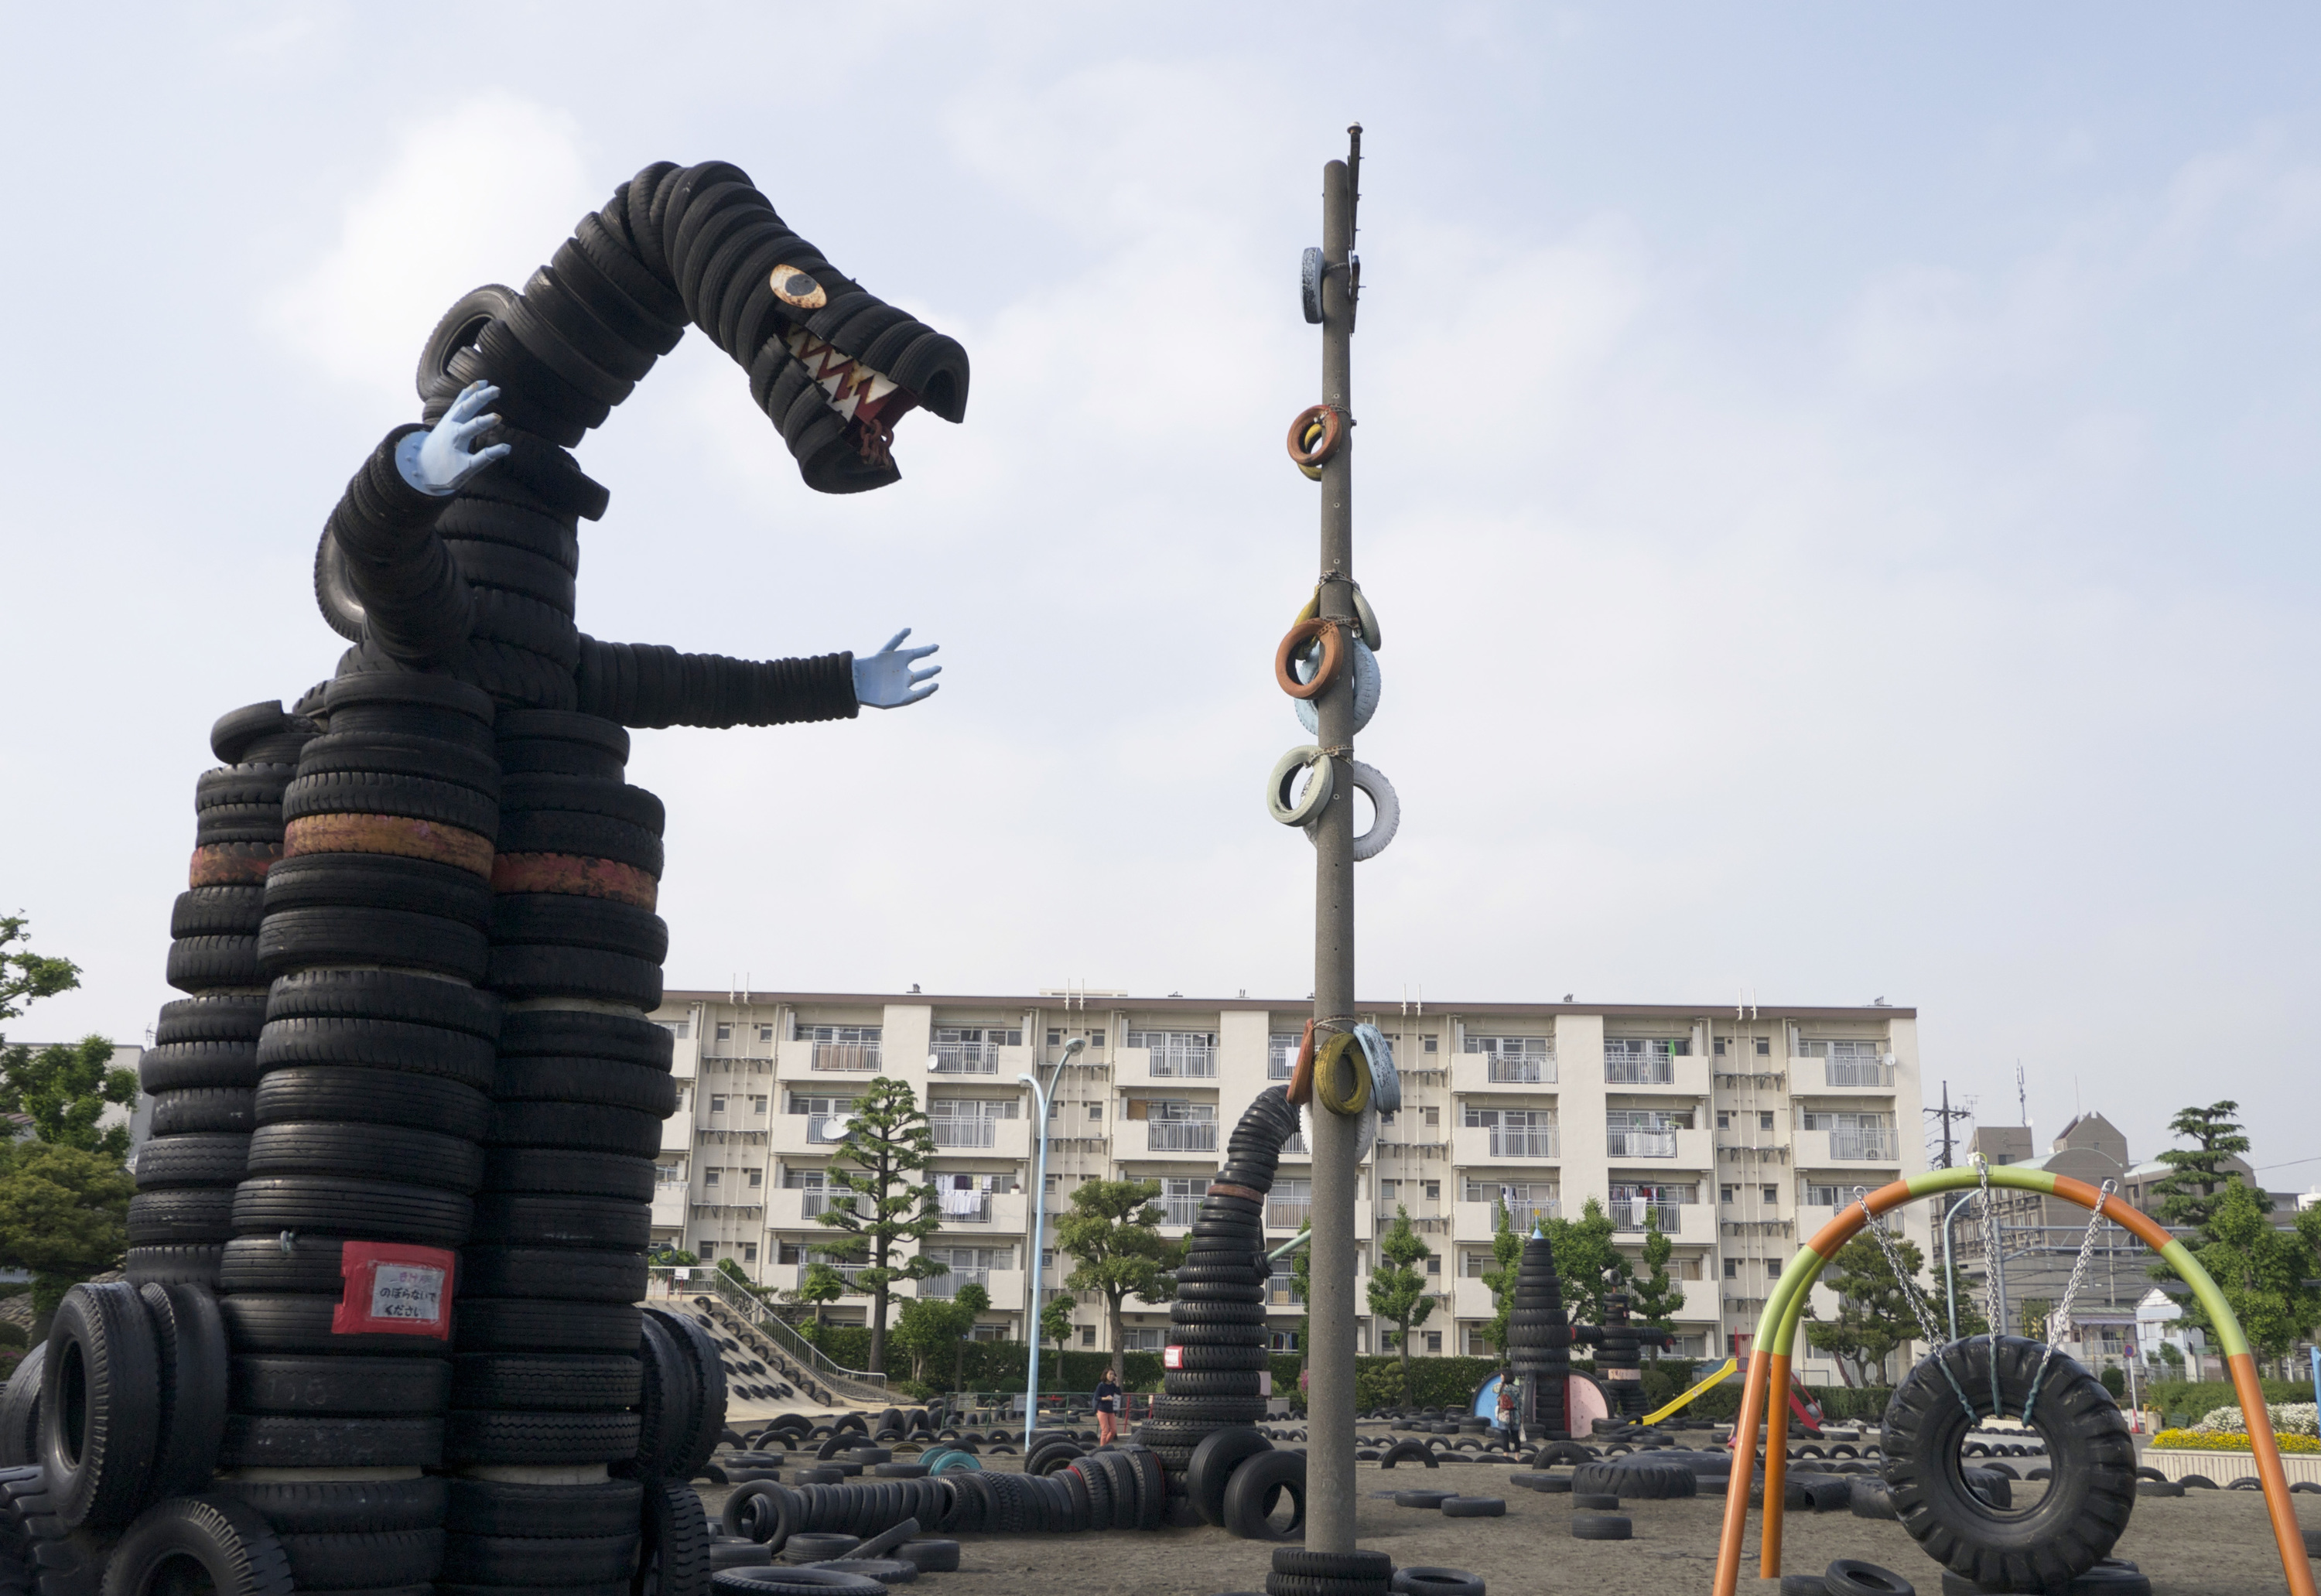 Take a breather with Godzilla at Tire Park